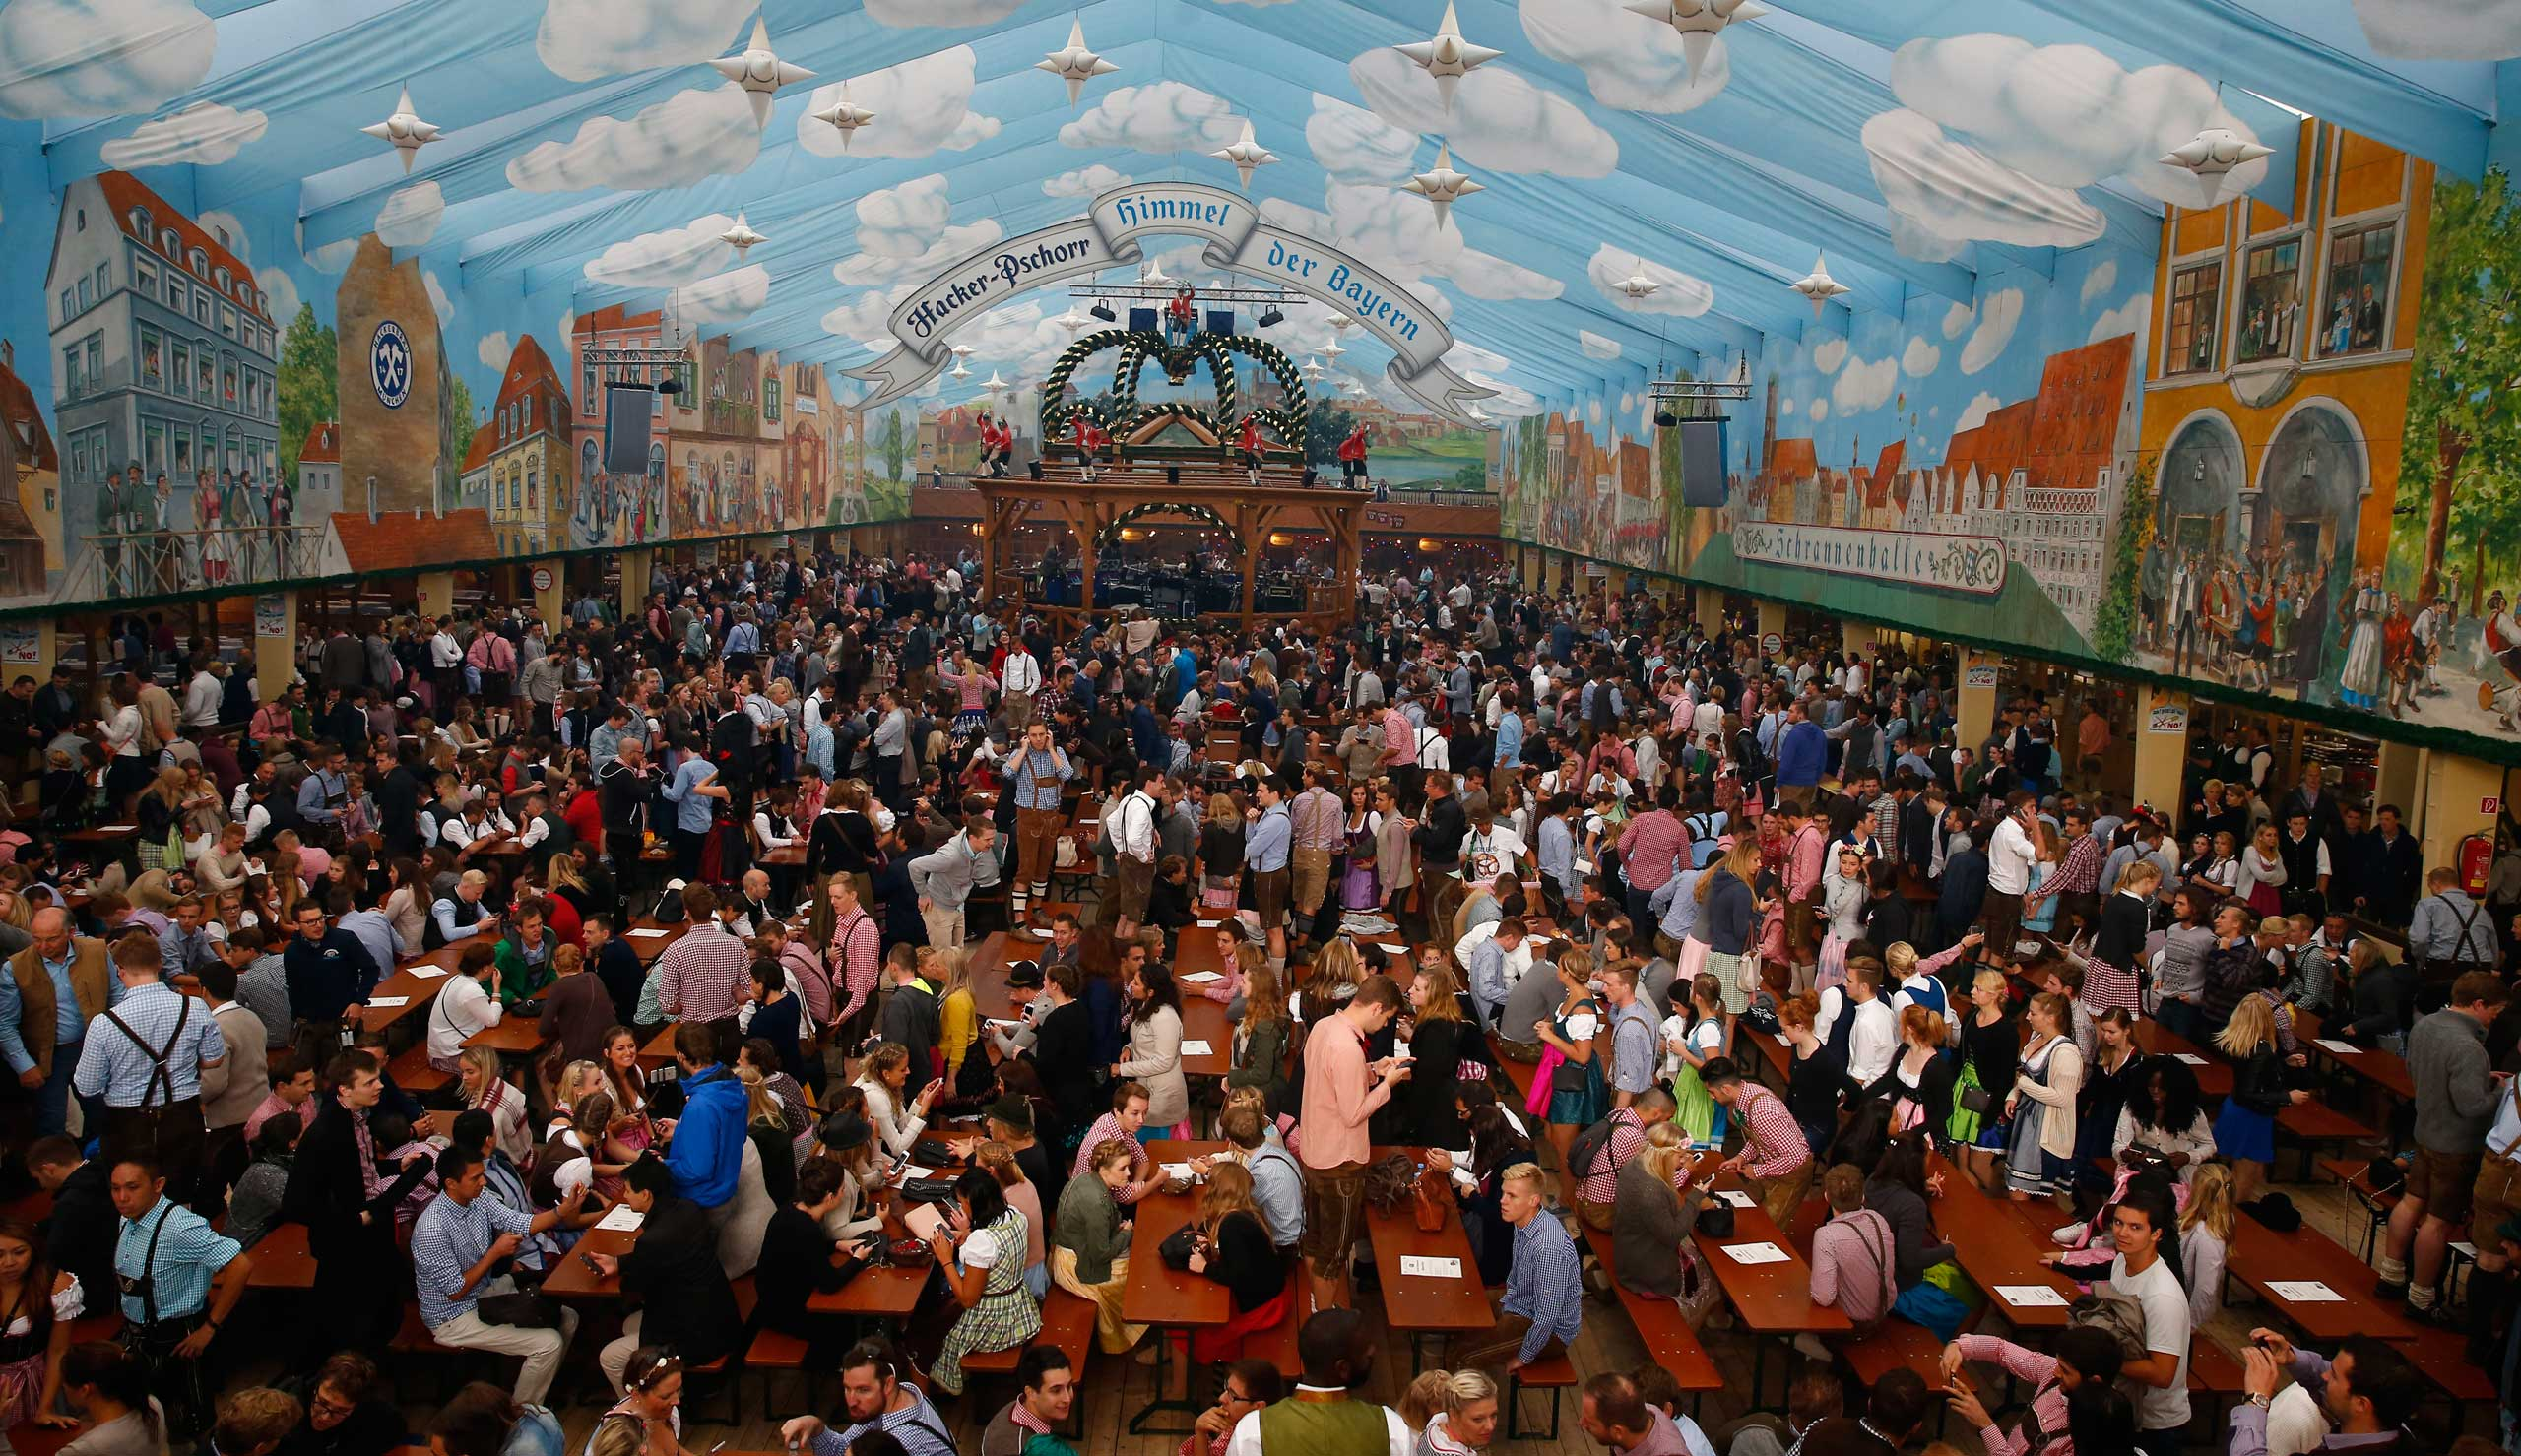 Customers fill a tent after the opening of the 182nd Oktoberfest in Munich, Germany, on Sept. 19, 2015.